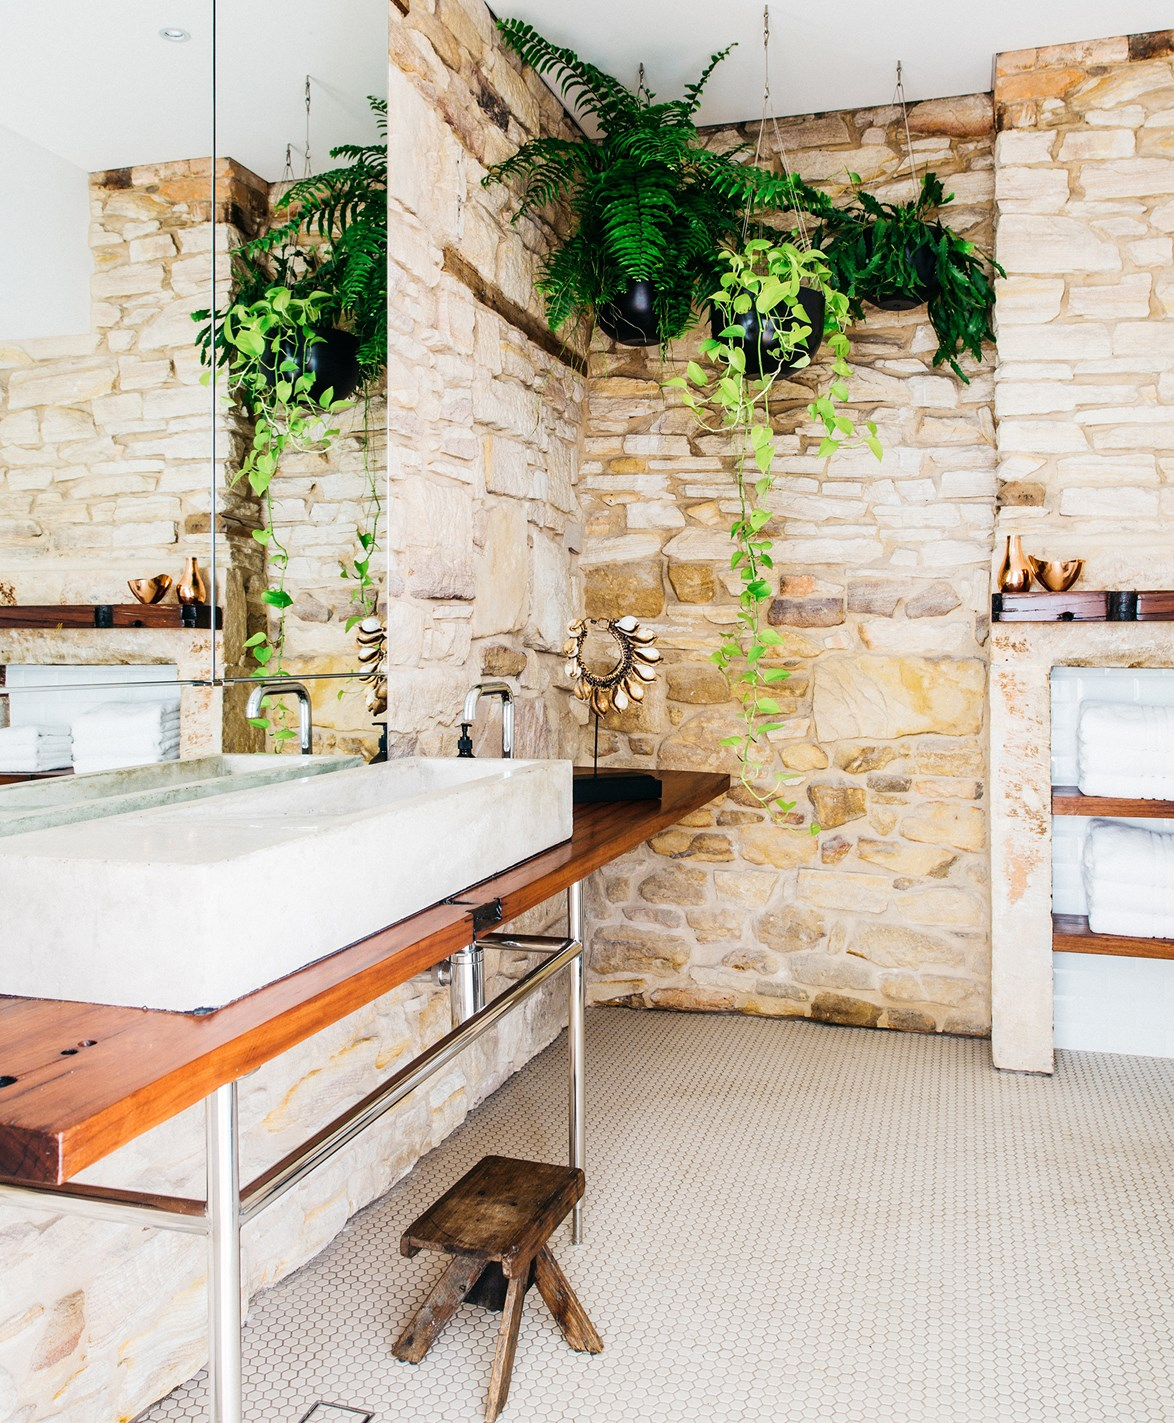 Hanging pots and greenery create a resort-like feel in this sandstone bathroom.